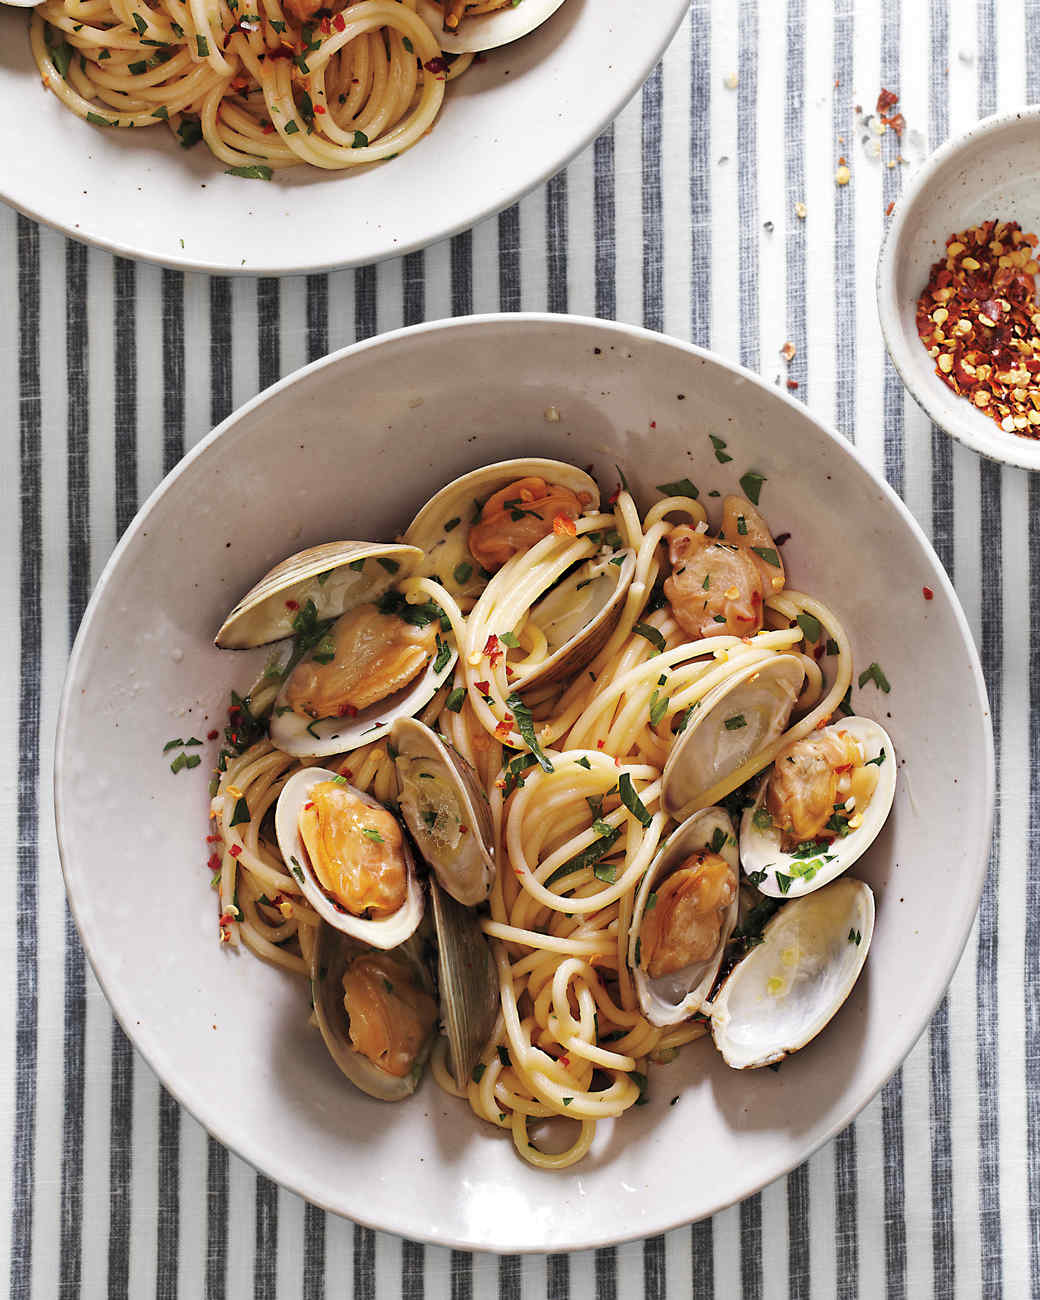 Spicy Clams with Spaghetti